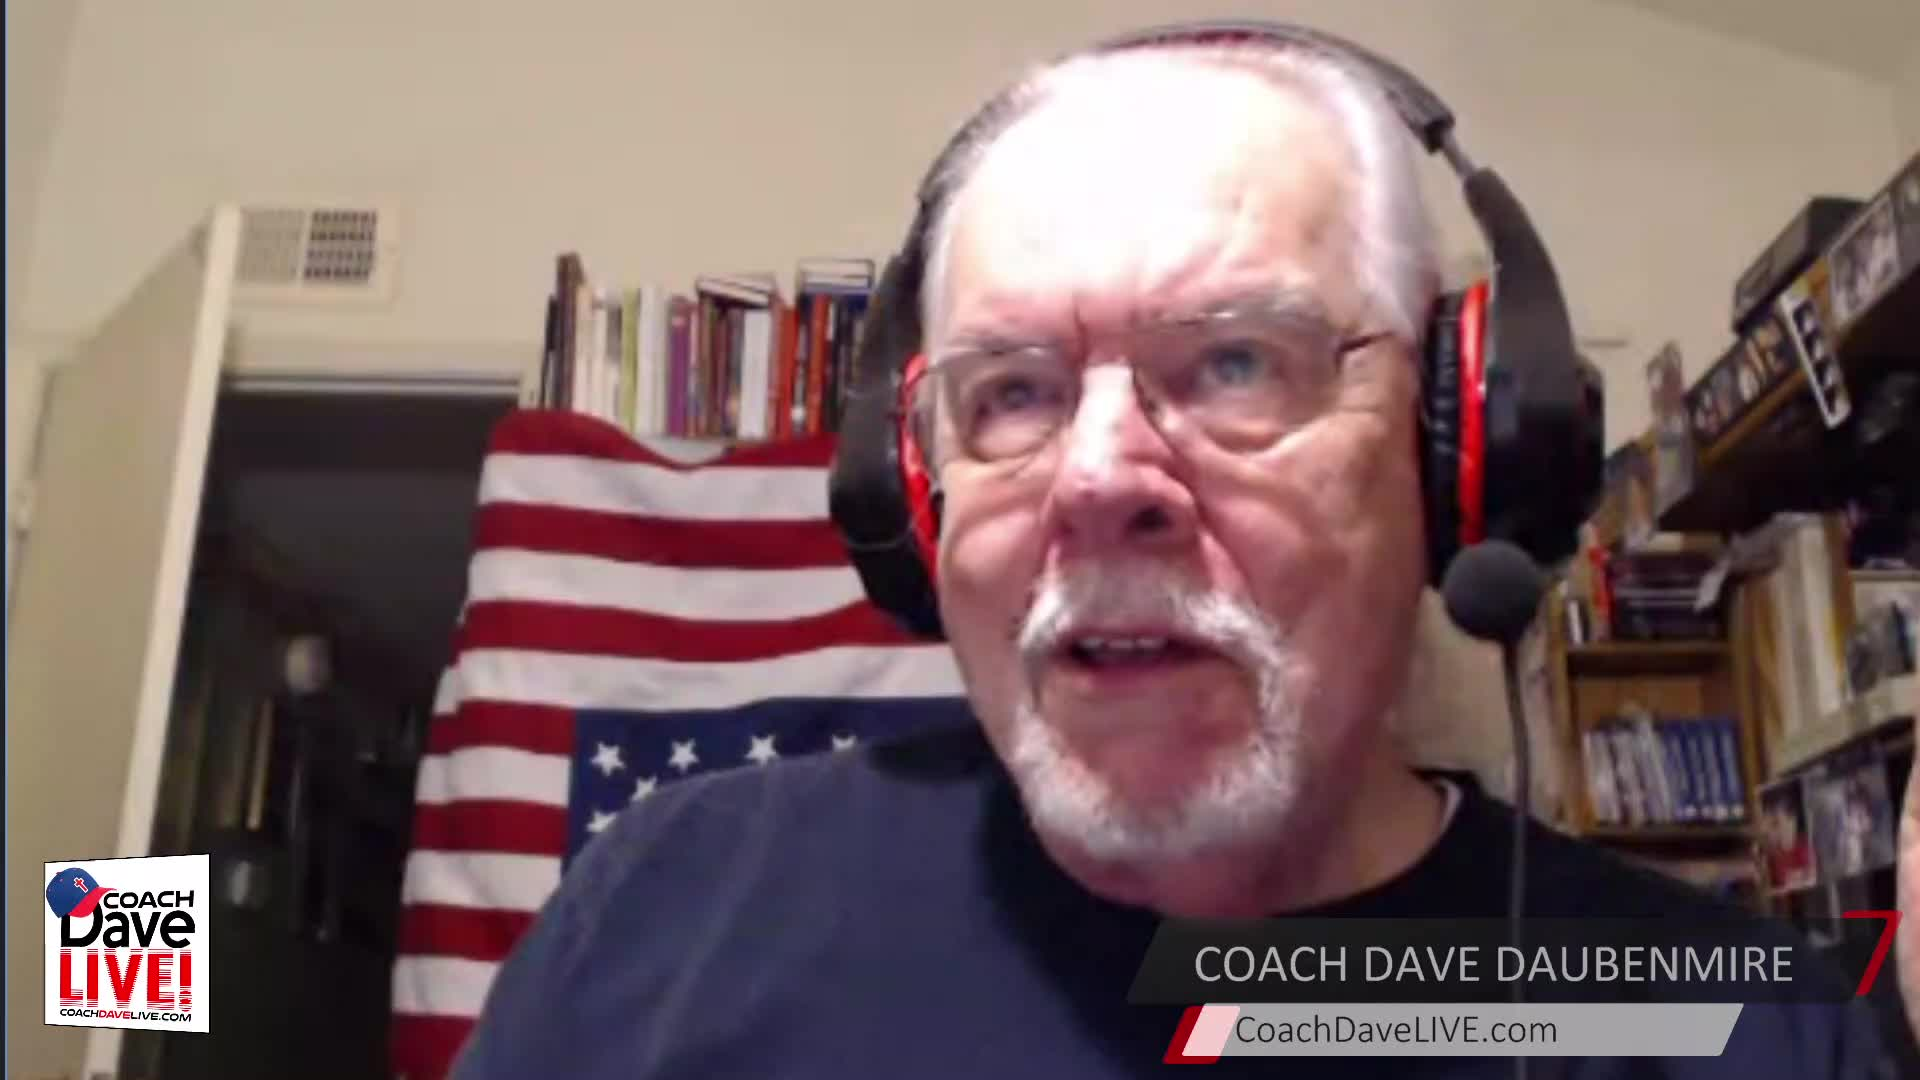 Coach Dave LIVE | 6-7-2021 | LIVE FROM NEW ORLEANS DAY 1 - AUDIO ONLY